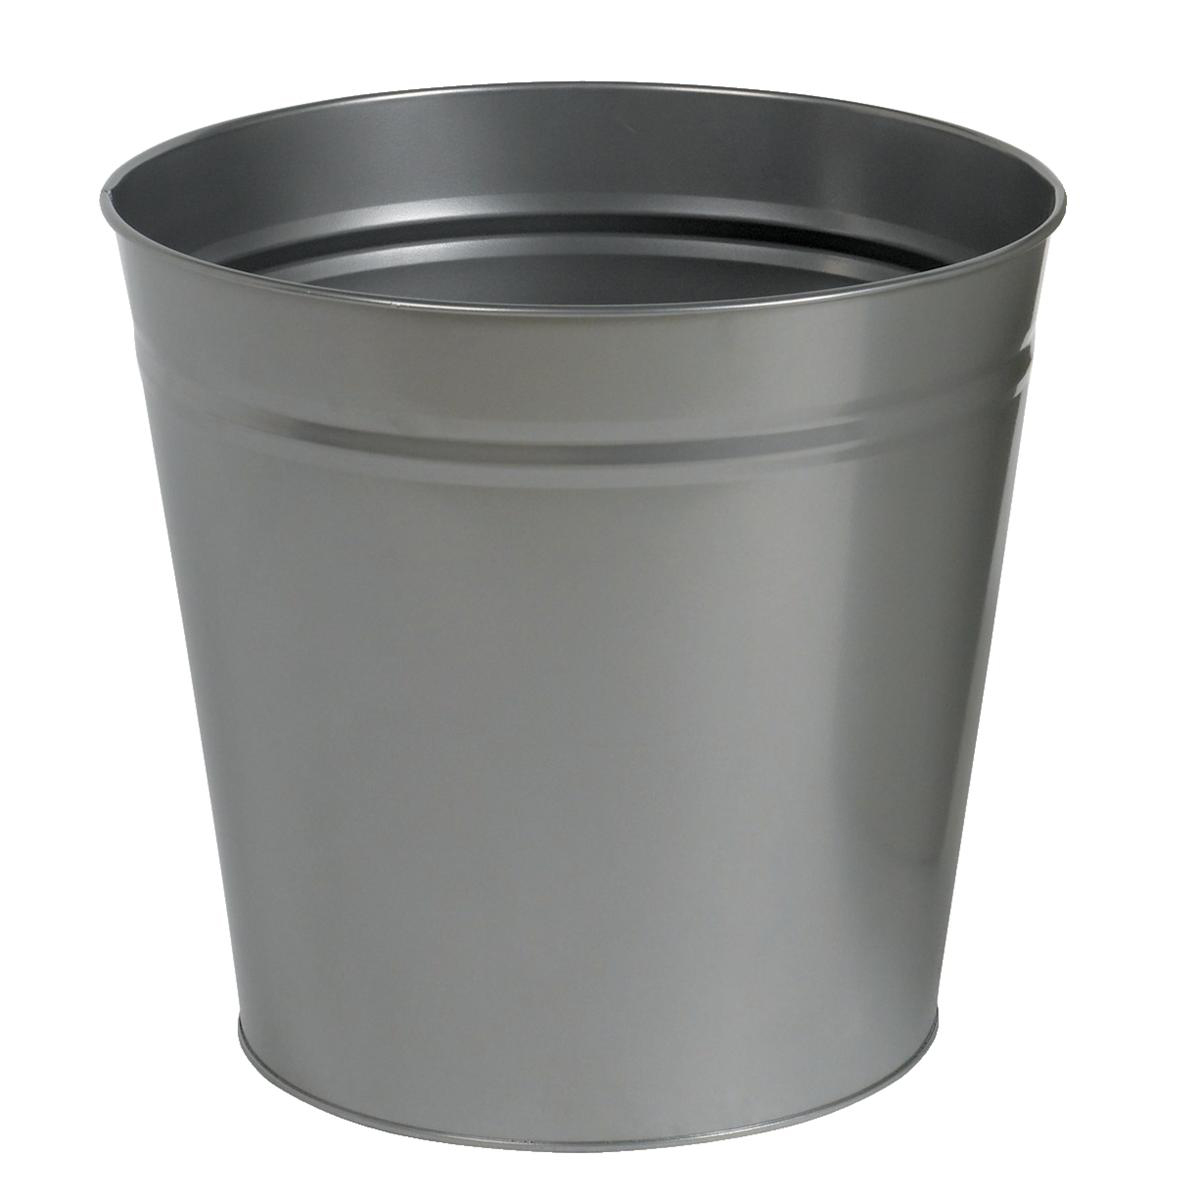 Rubbish Bins 5 Star Facilities Waste Bin Round Metal Scratch Resistant 15 Litre Capacity 300x280mm Grey